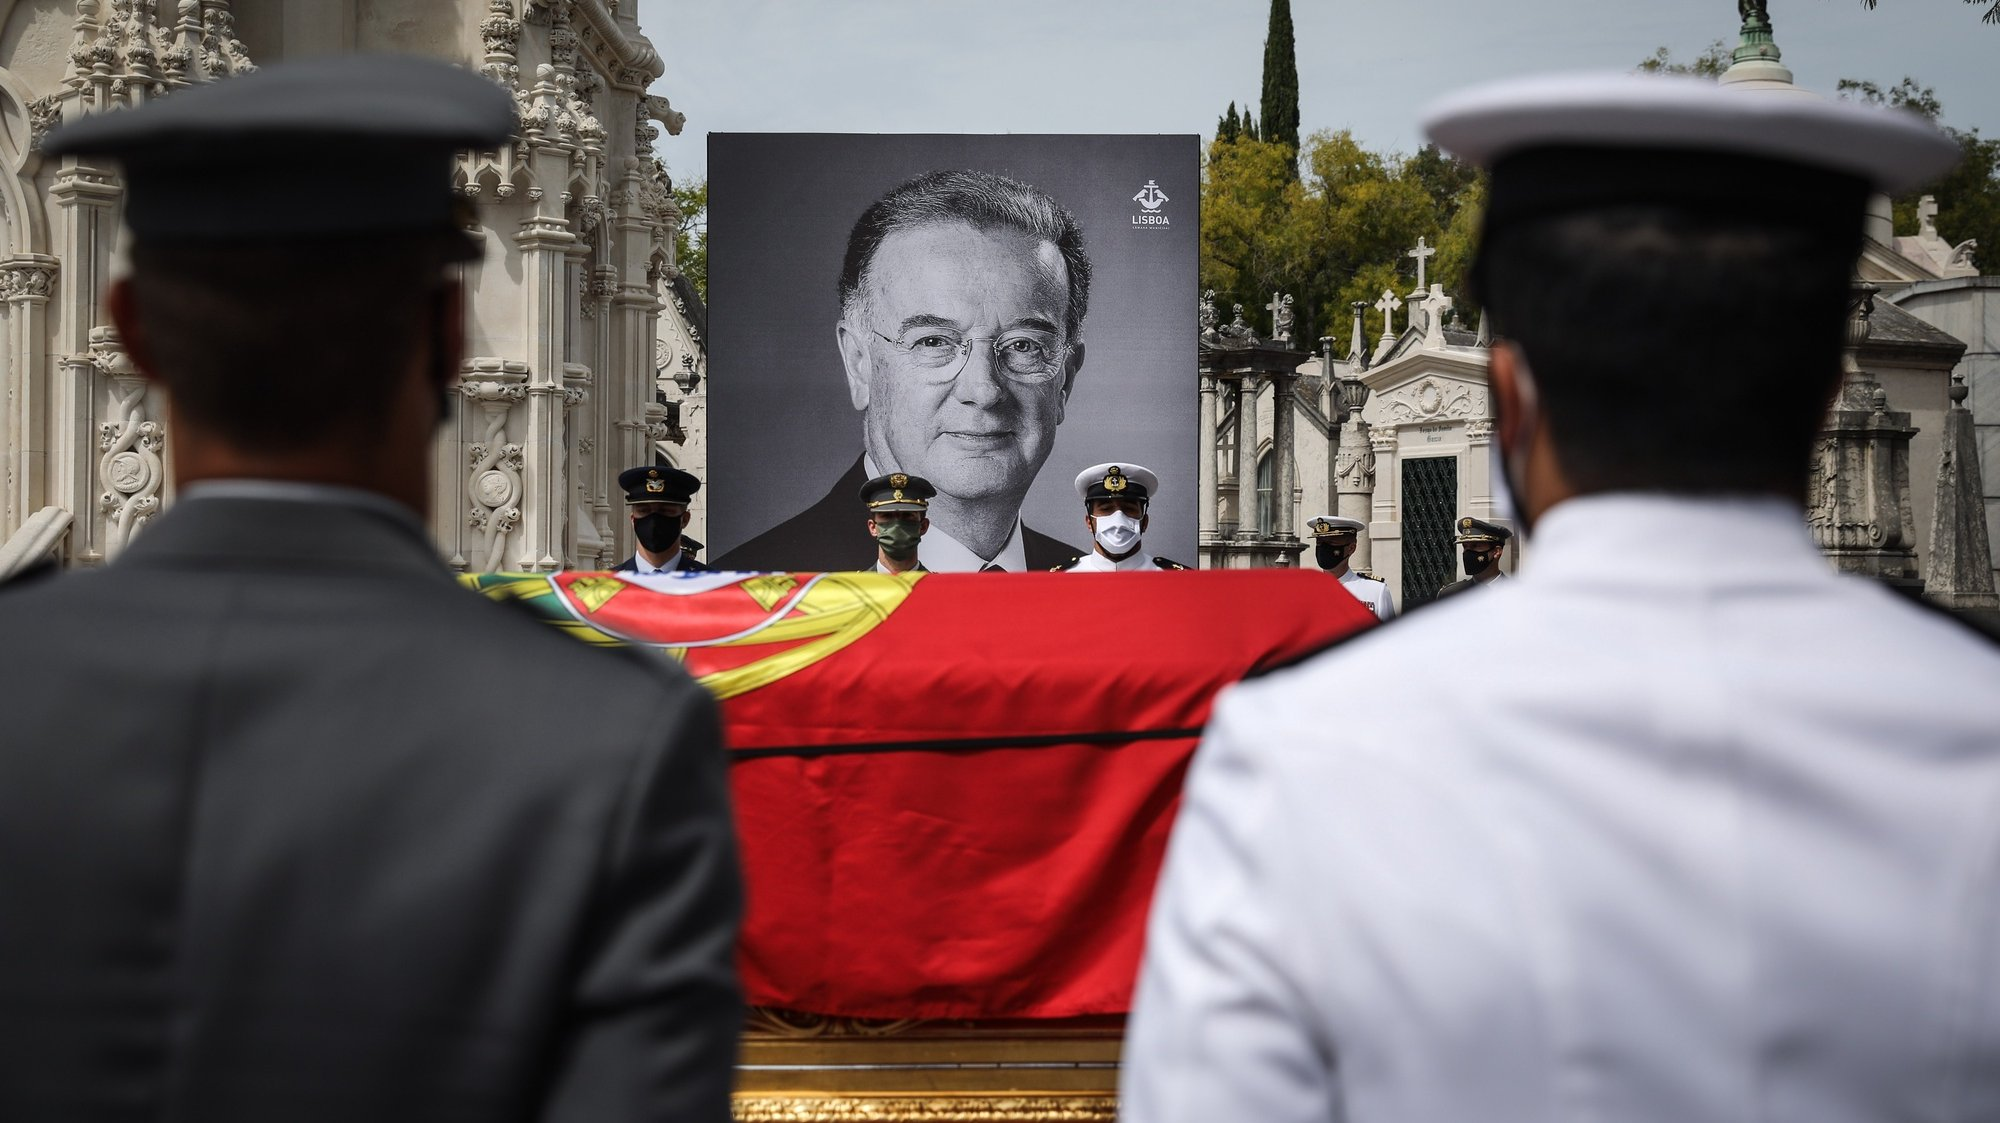 The urn during the funeral service for the late Portuguese President Jorge Sampaio at Alto de São João cemetery, Portugal, 12 september 2021. Jorge Sampaio, former secretary-general of the PS (1989/1992) and two-term President of the Republic (1996/2006), died on Friday, at the age of 81, at Santa Cruz Hospital, in Lisbon, where he had been hospitalized since August 27, following respiratory difficulties. RODRIGO ANTUNES/LUSA